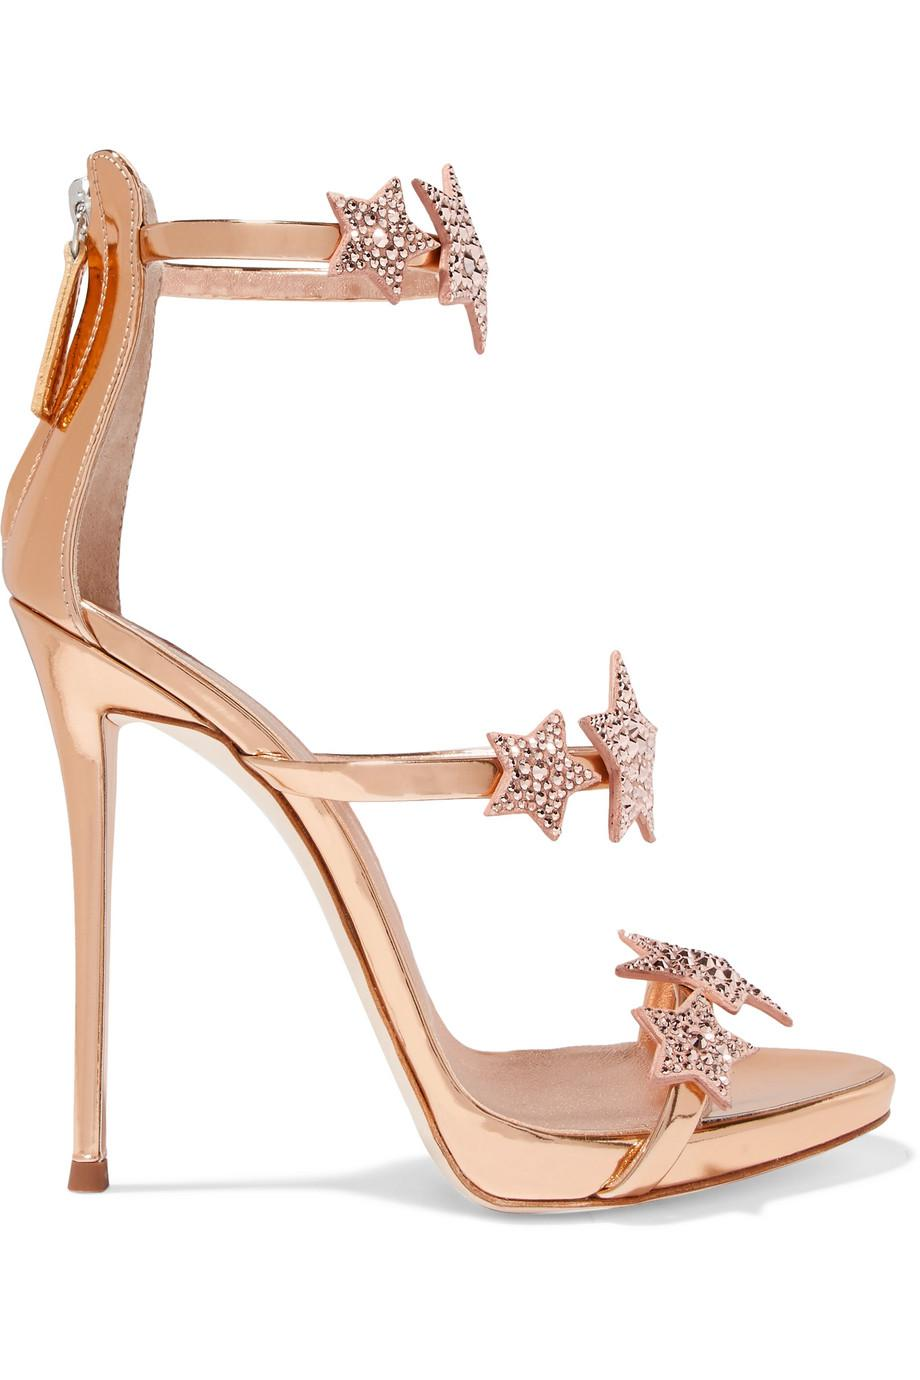 9eecce5f8d8f giuseppe-zanotti-pink -Coline-Crystal-embellished-Appliqued-Metallic-Leather-Sandals.jpeg